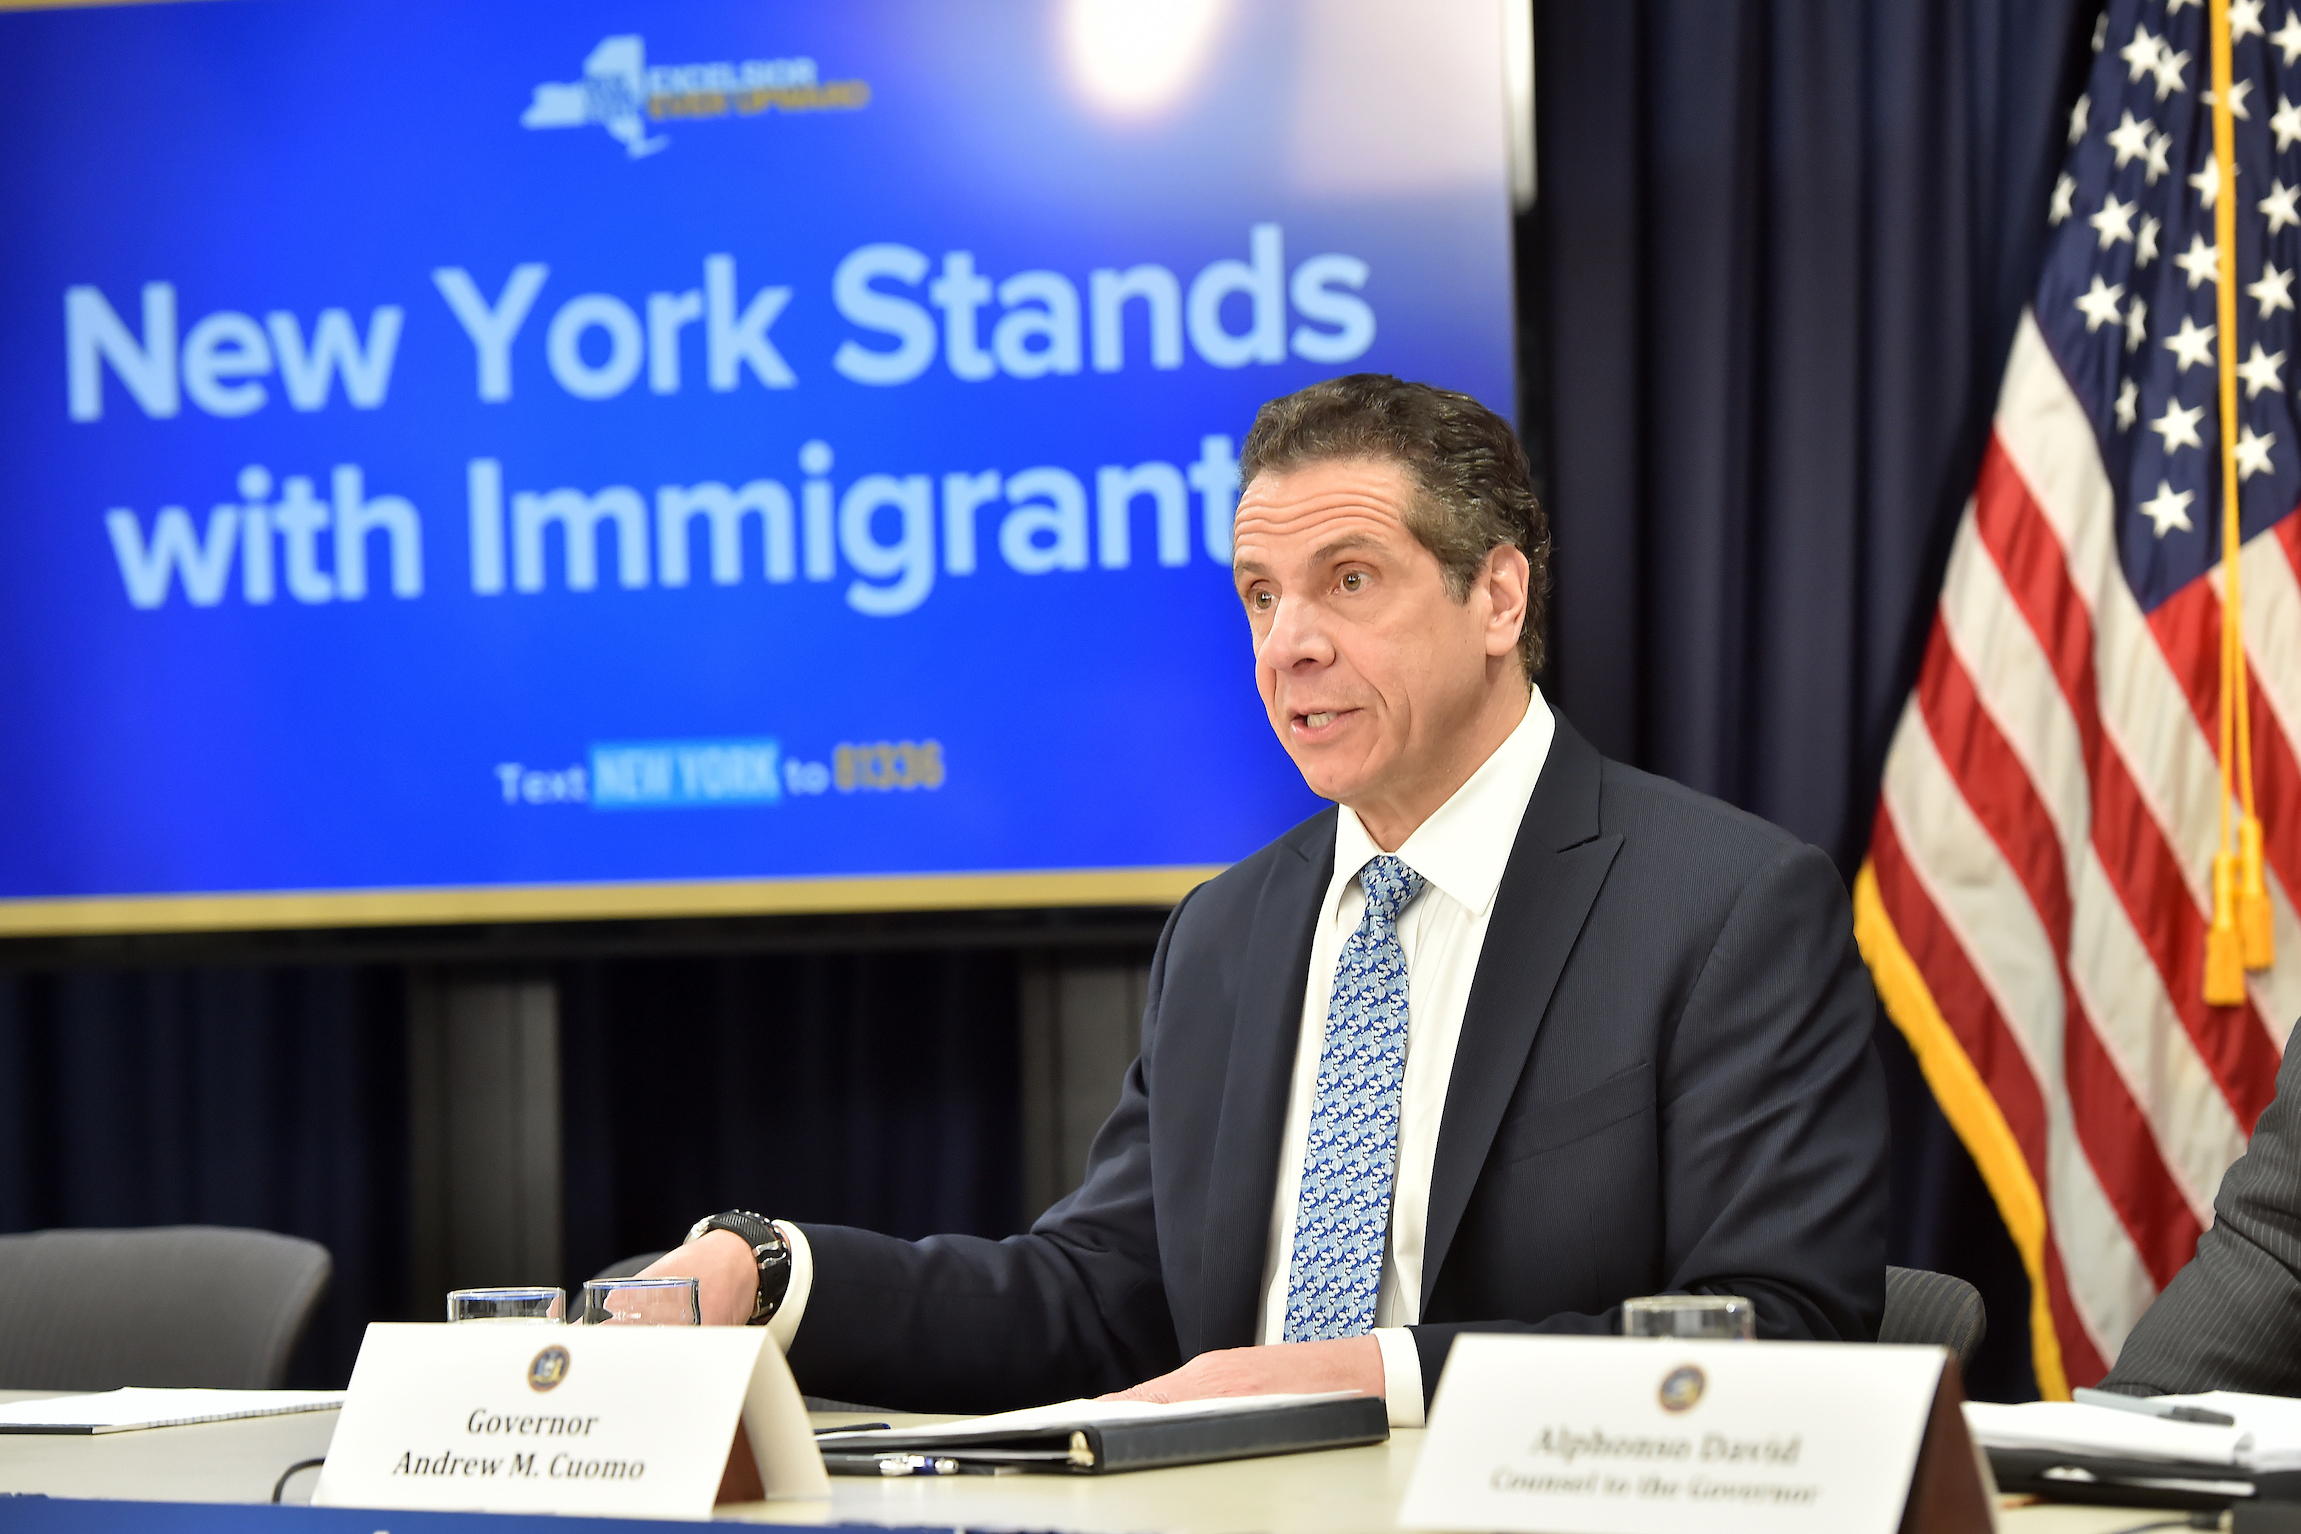 Governor Andrew Cuomo touts his support for immigrant communities, April 25, 2018.